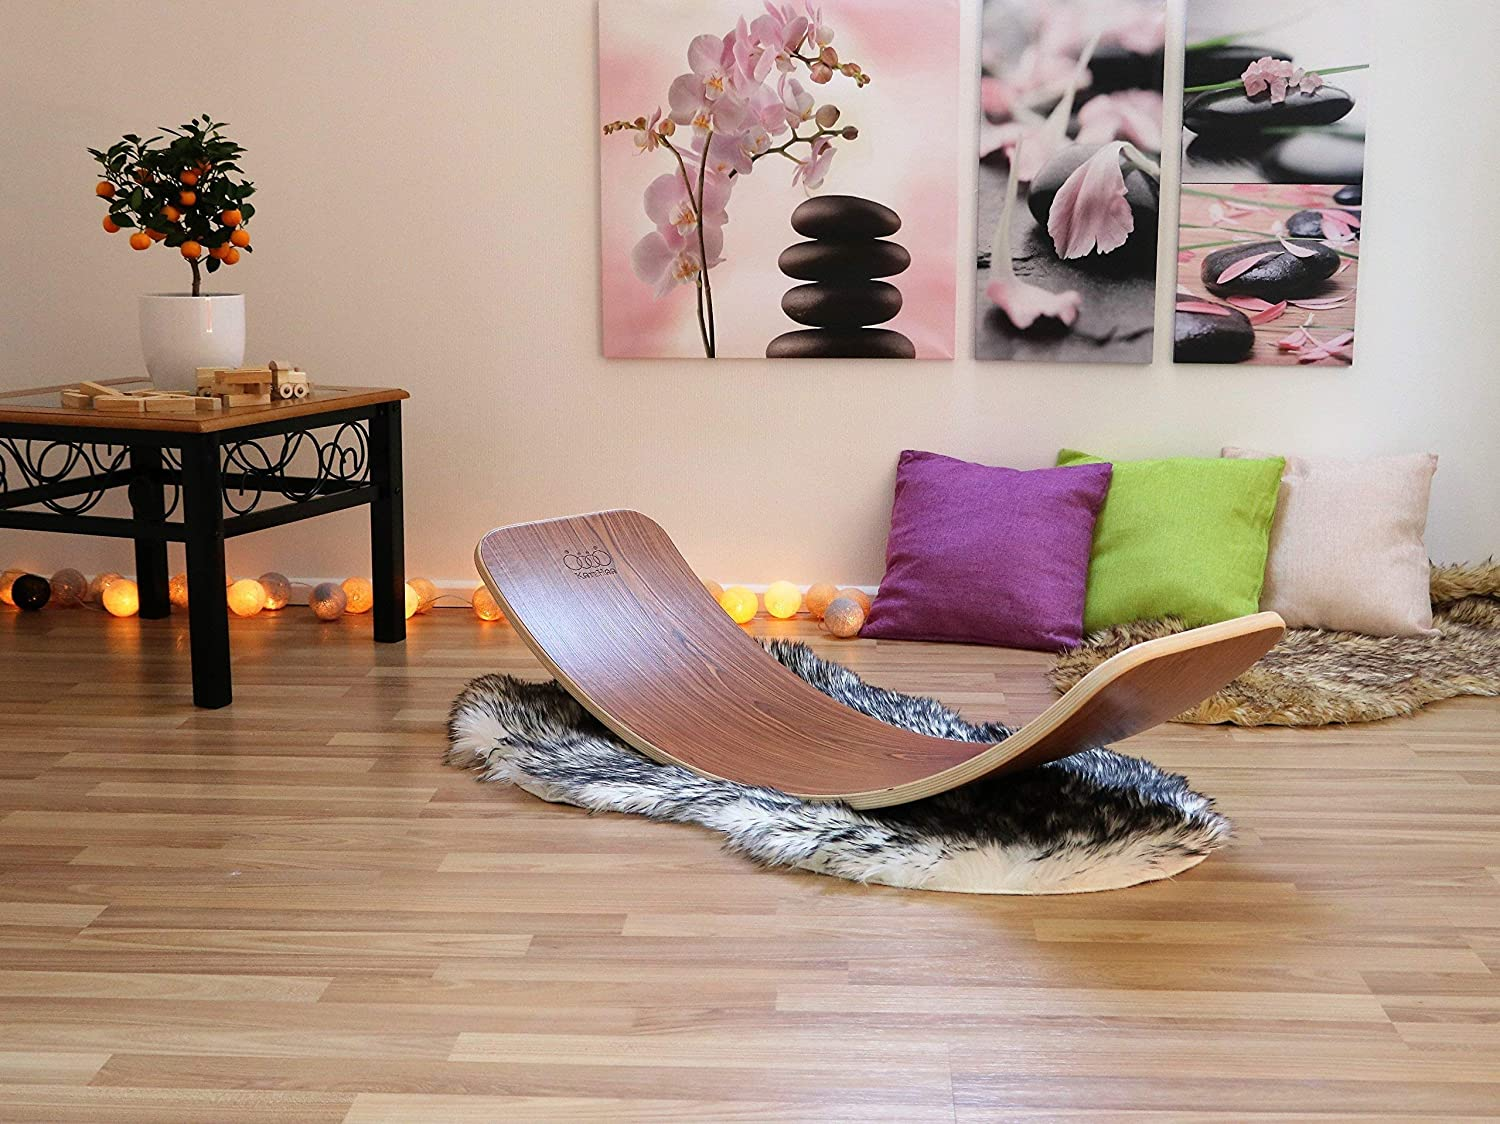 KateHaa Large Wooden Balance Board Rosewood Montessori toy Wooden toy Baby cradle Curvy board Kids toy Wooden board Wooden curvy board